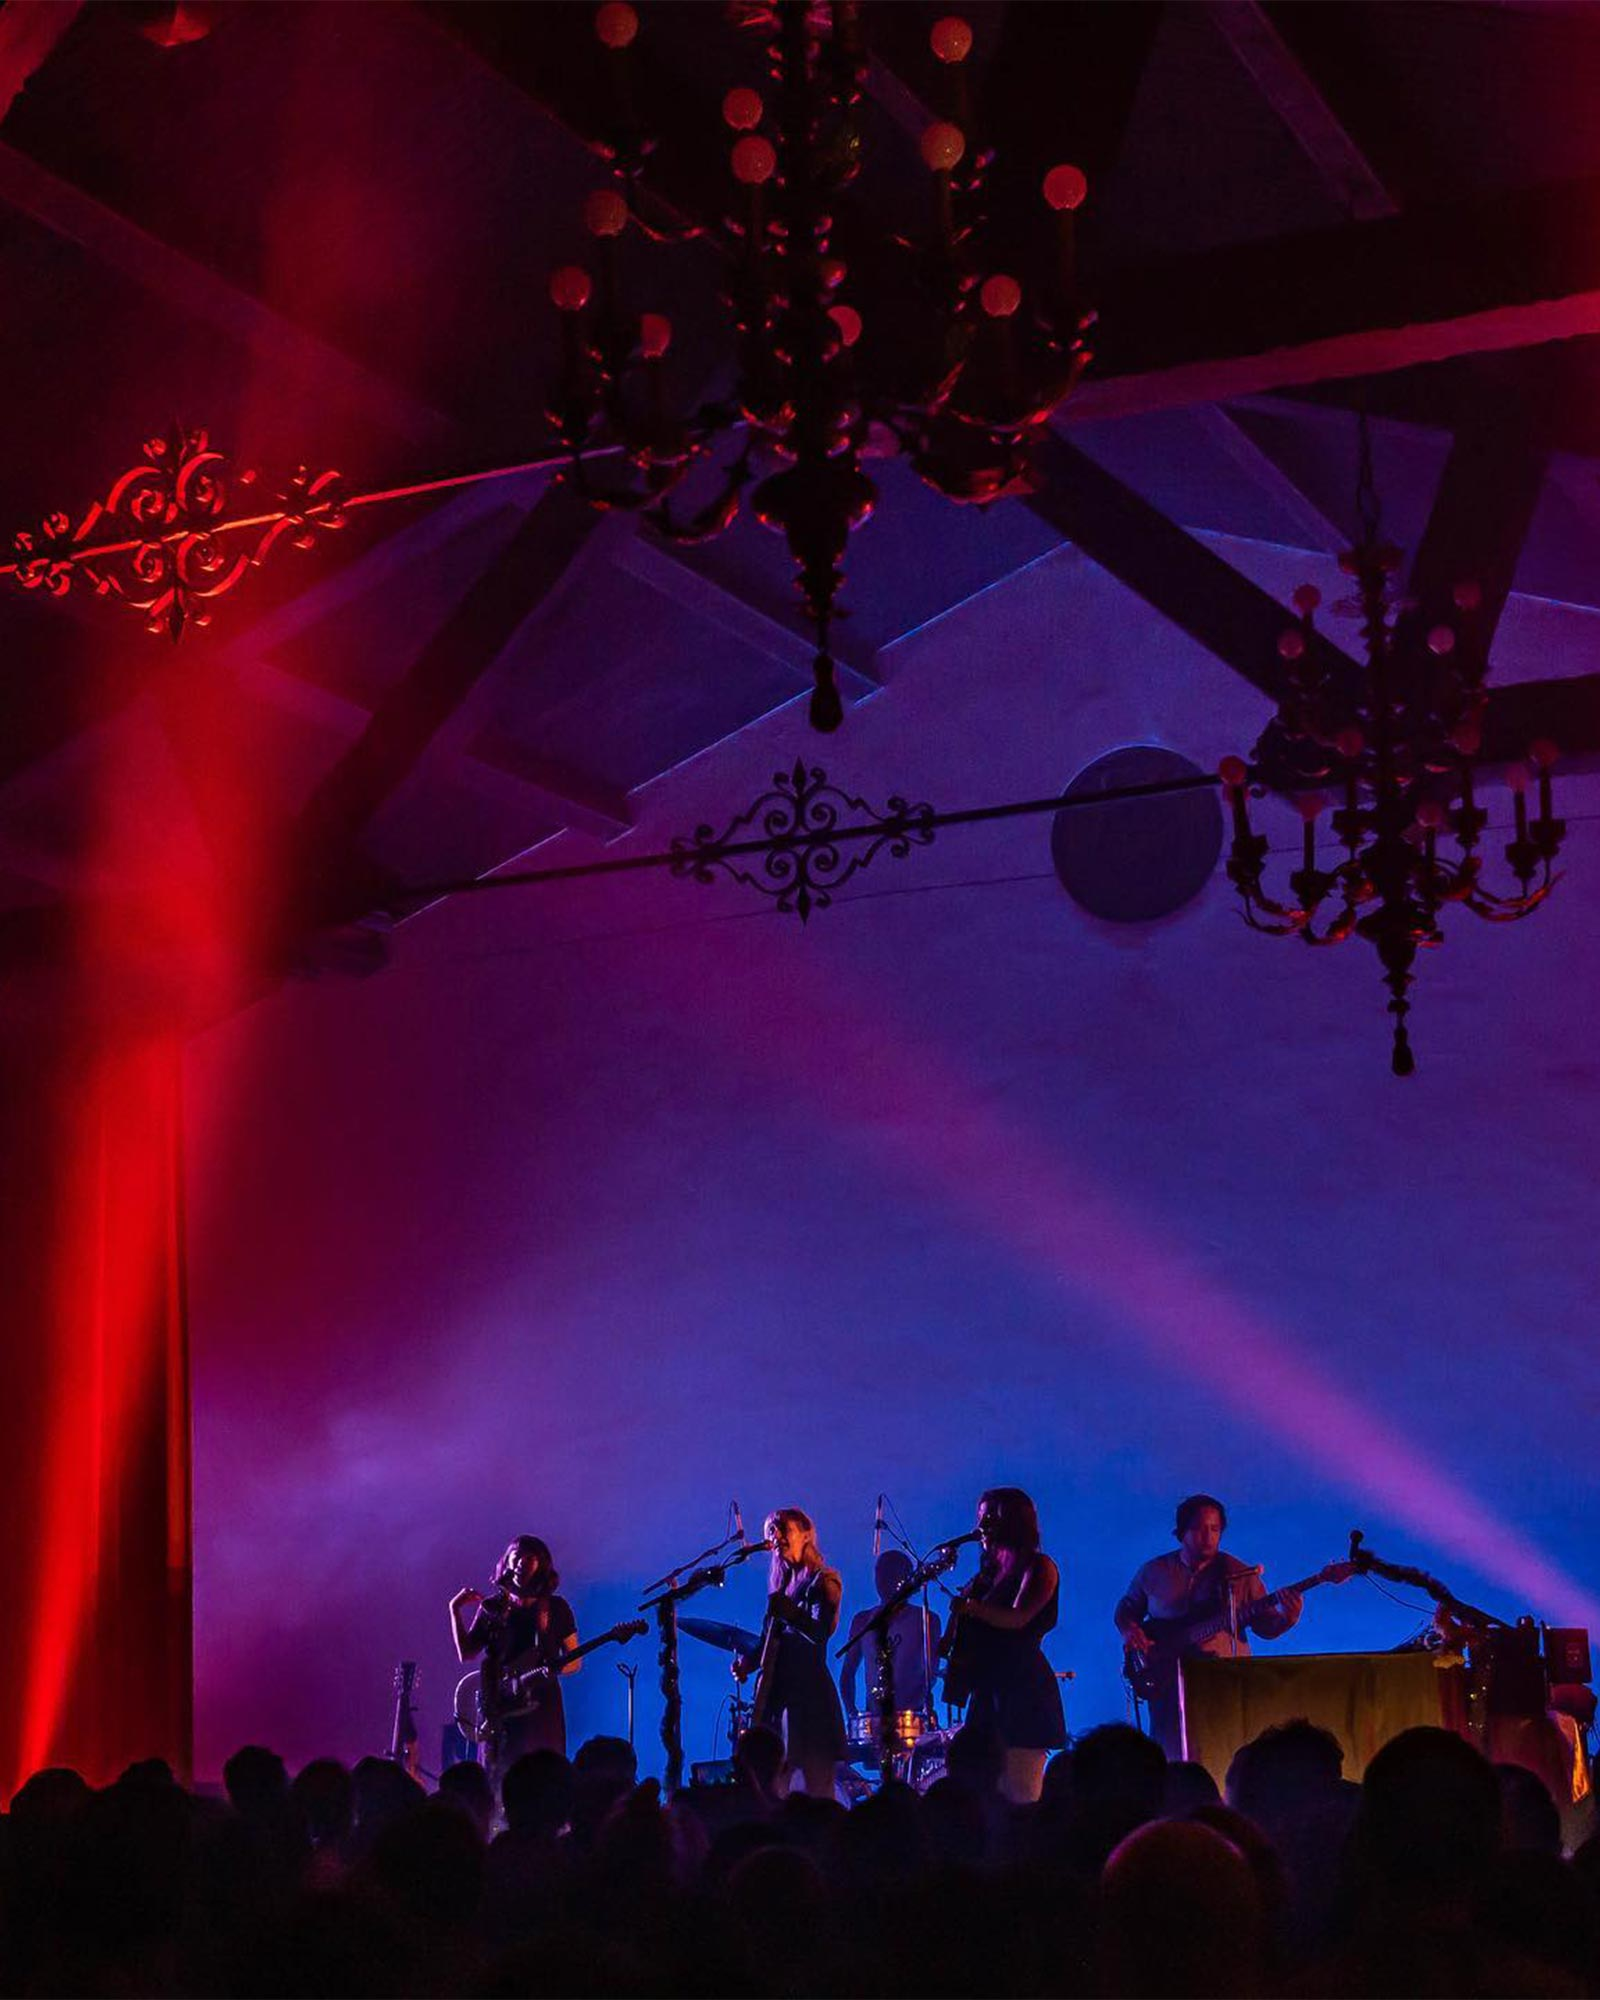 Hollywood Forever Cemetery which doubles as a live music venue in Los Angeles.